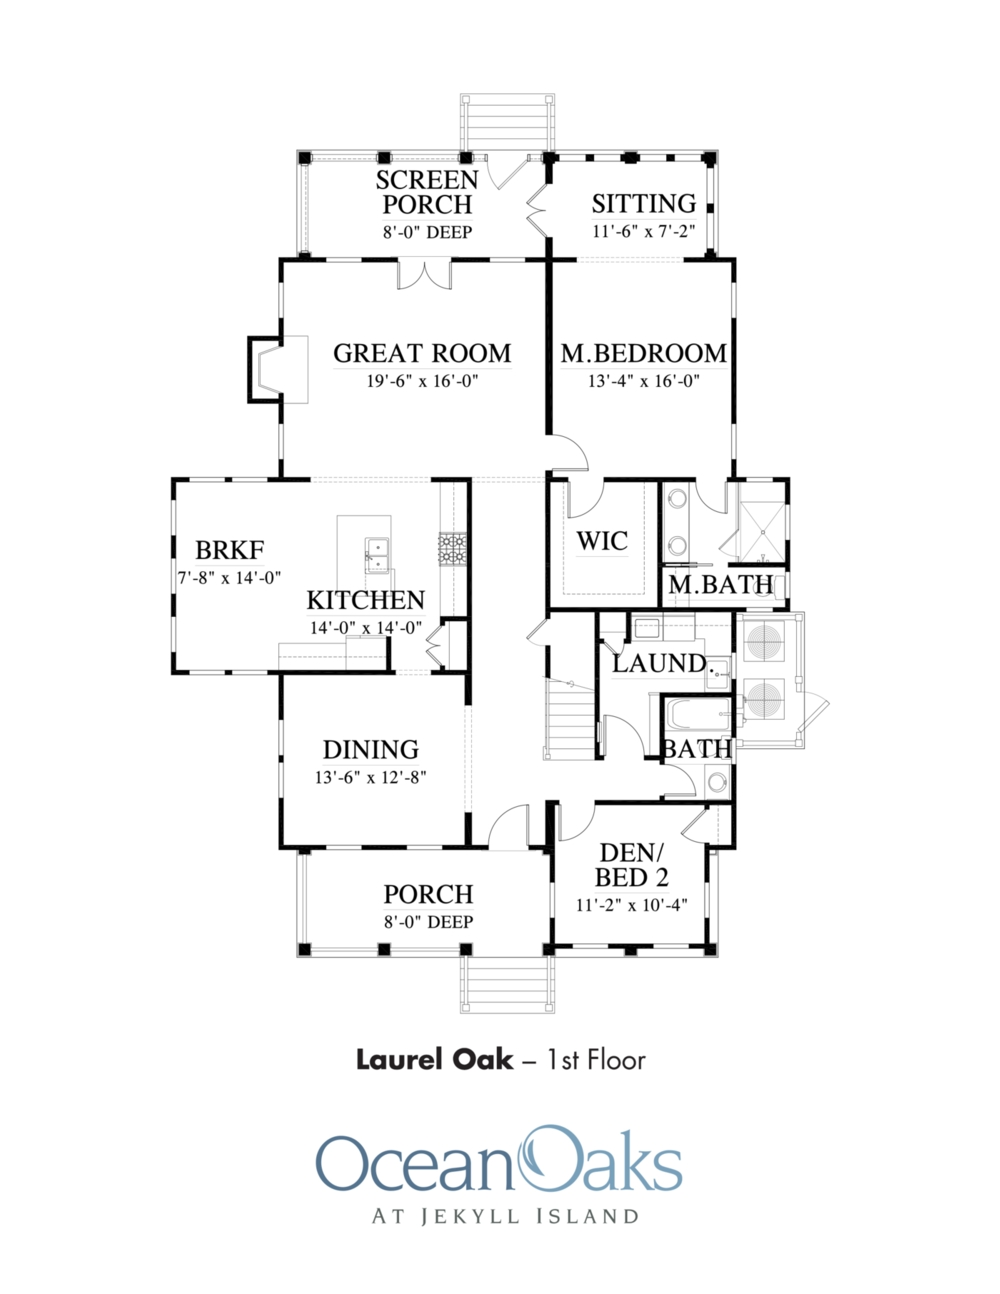 Laurel_Oak_Floorplans_1st-8A30.jpg